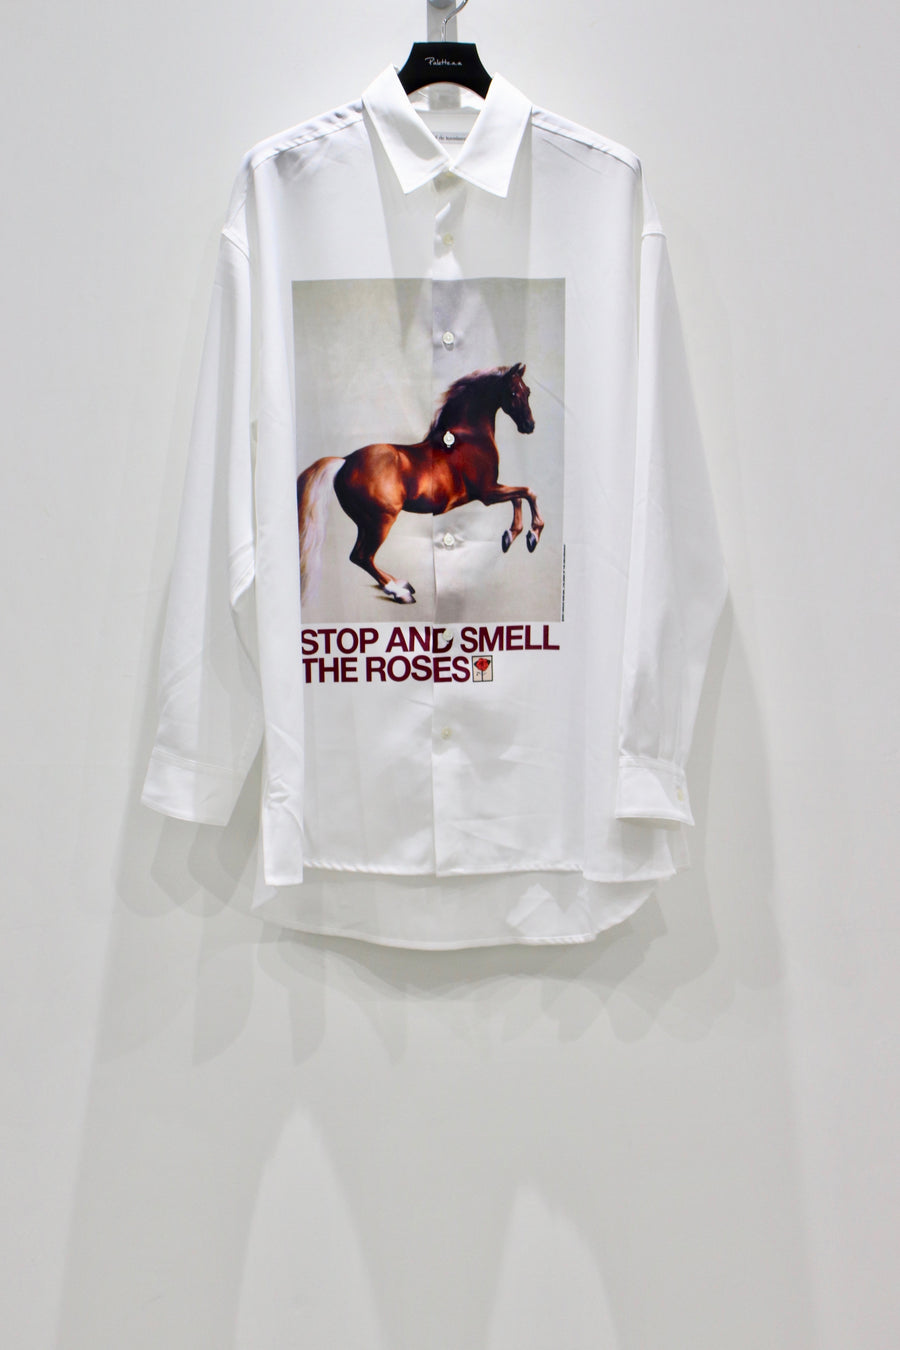 Children of the discordance  OIL PAINTING PRINT SHIRT C (A HORSE)